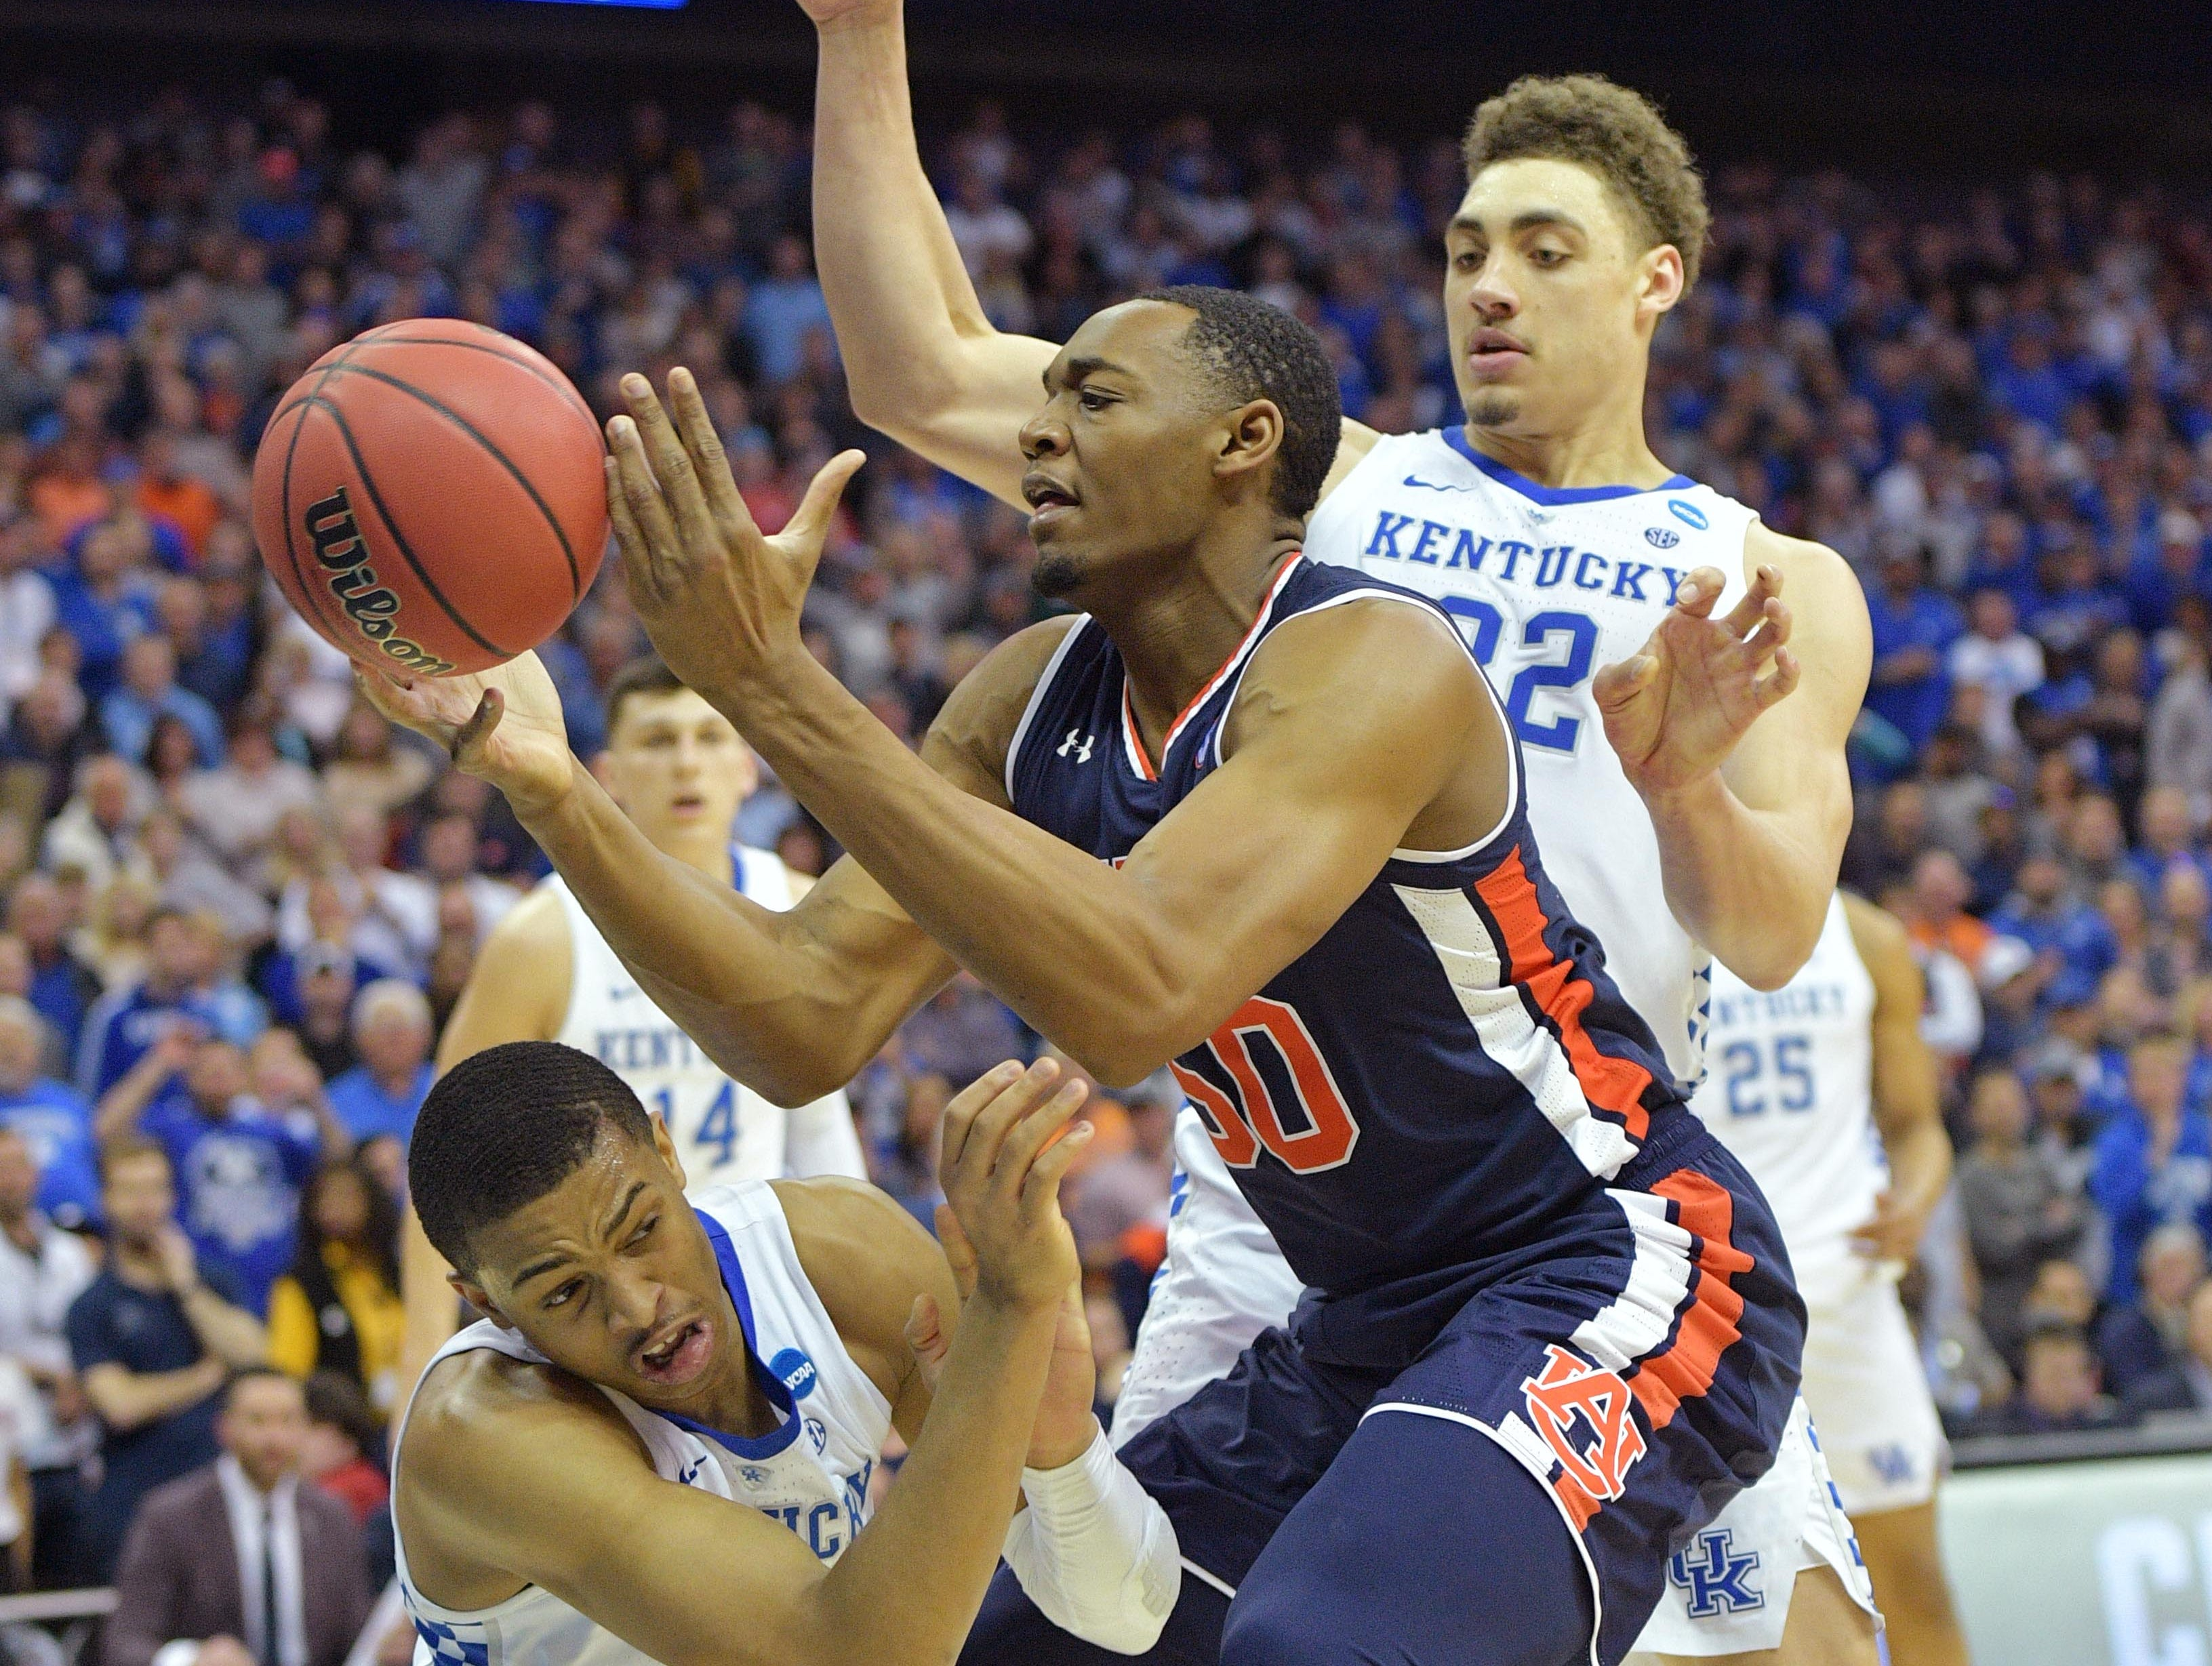 Mar 31, 2019; Kansas City, MO, United States; Auburn Tigers center Austin Wiley (50) looks to shoot between Kentucky Wildcats forward Reid Travis (22) and guard Keldon Johnson (3) during the second half in the championship game of the midwest regional of the 2019 NCAA Tournament at Sprint Center. Mandatory Credit: Denny Medley-USA TODAY Sports